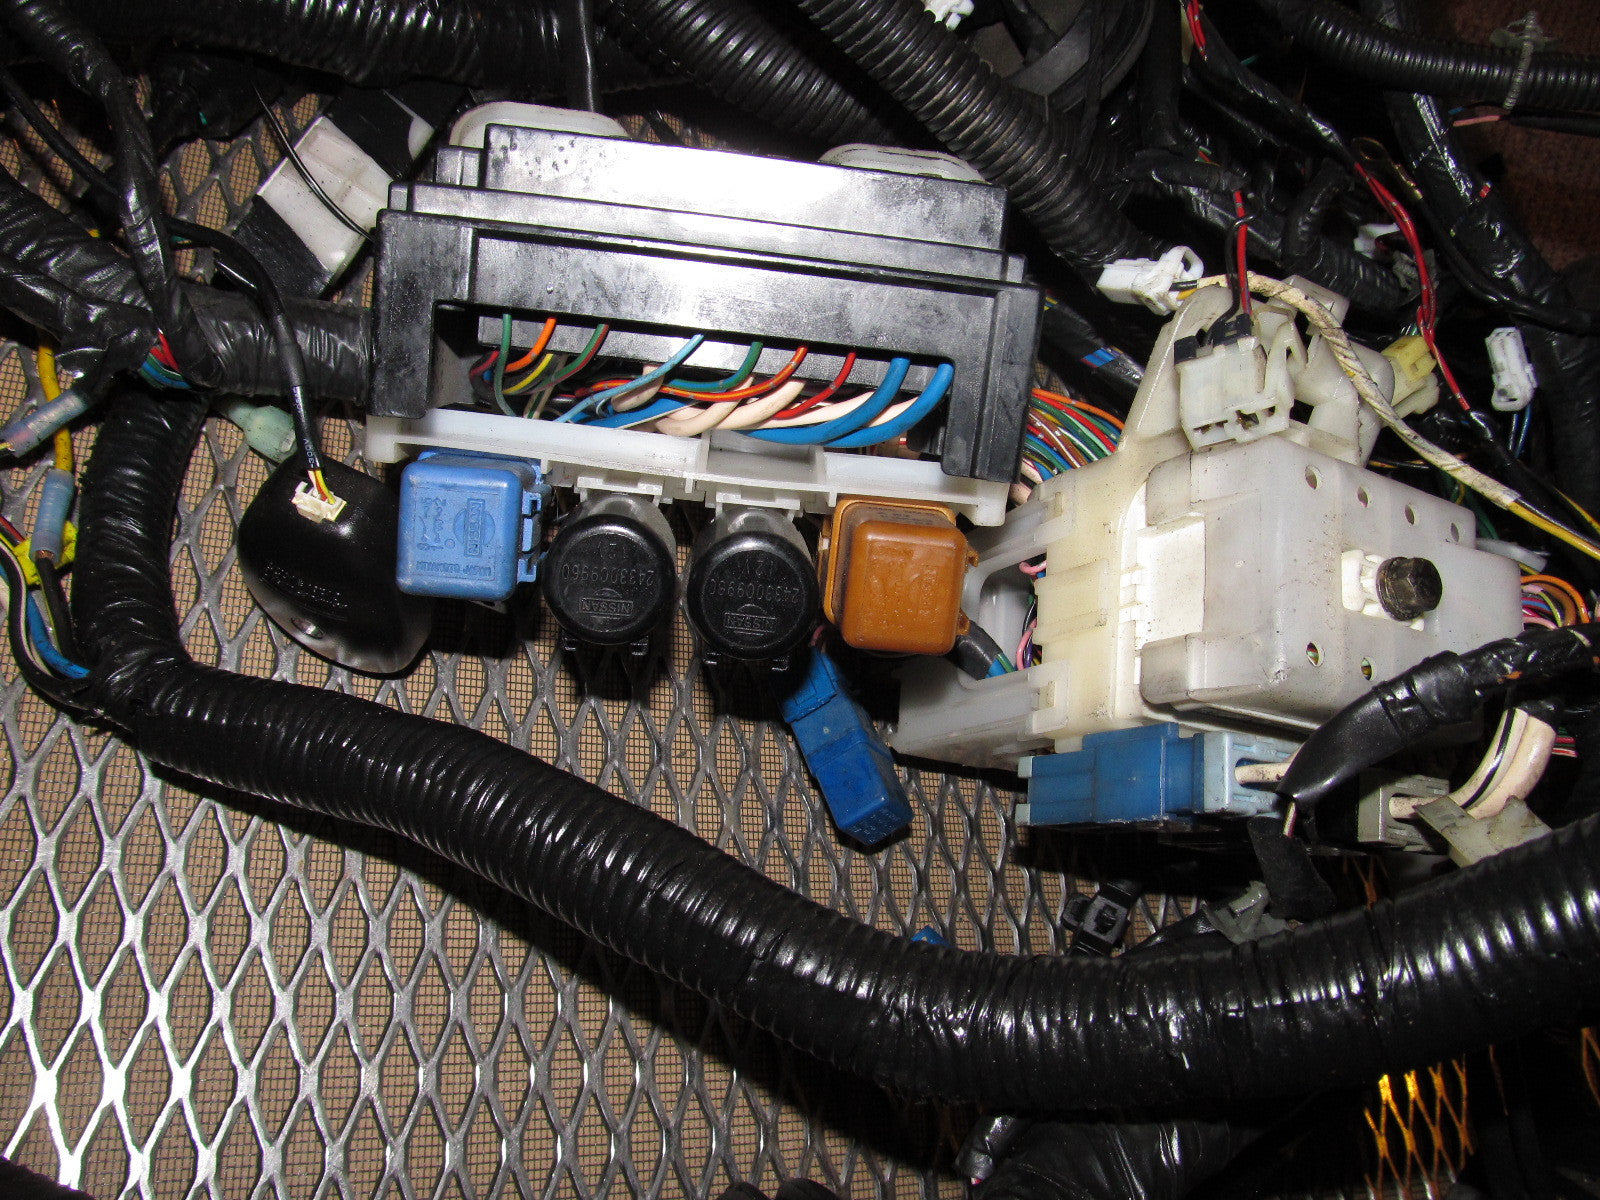 95 nissan 240sx engine fuse box cover wiring library 240sx fuse box